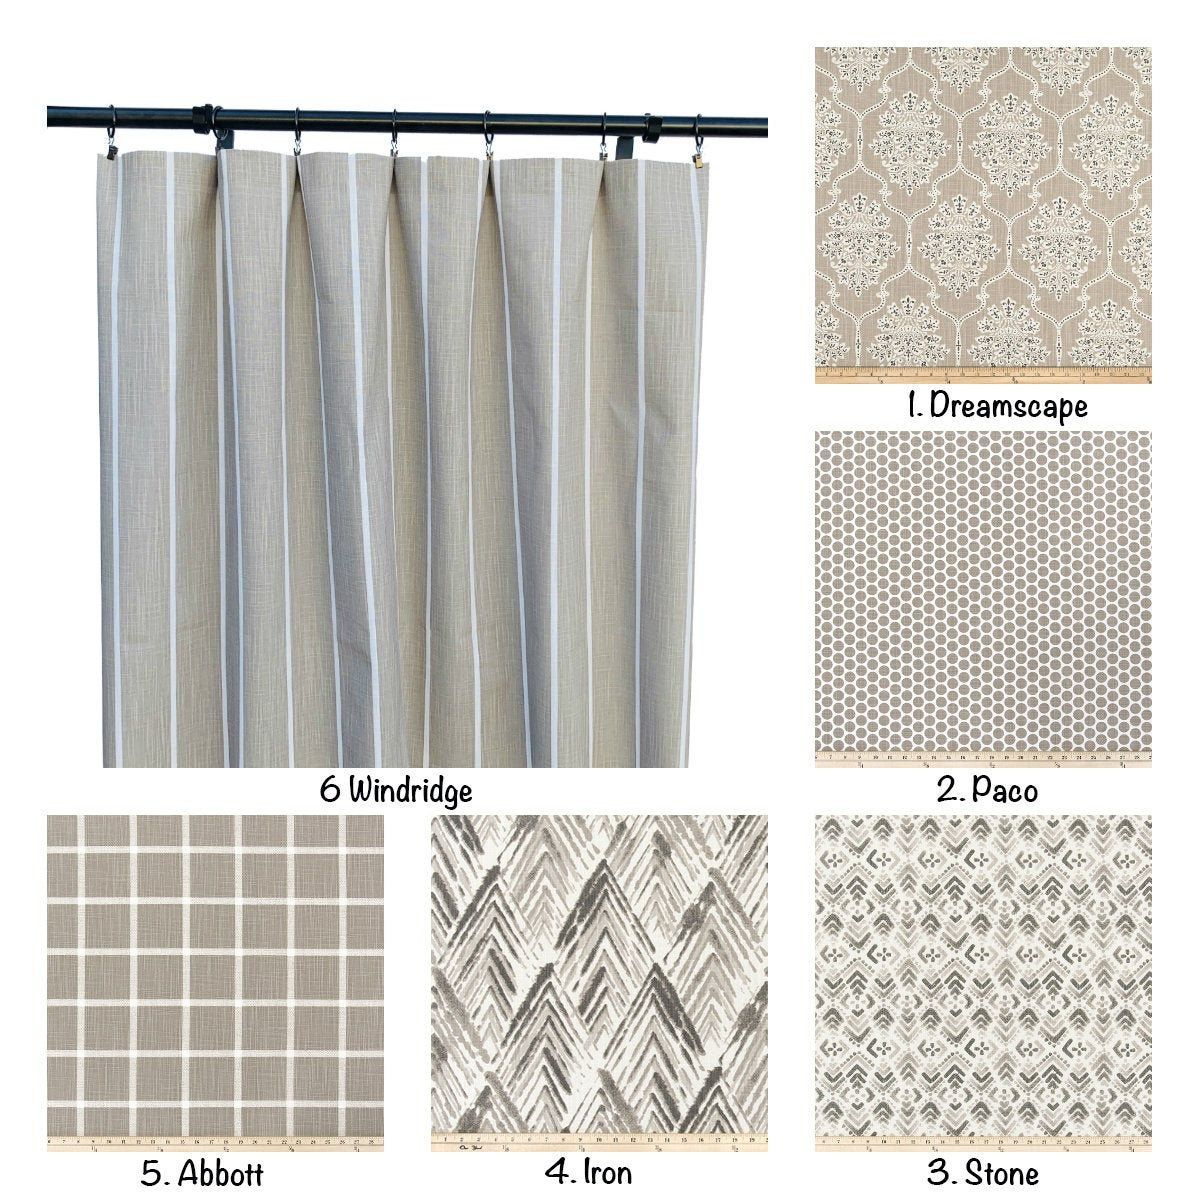 Ecru Tan Curtain Panels Tan Curtain 2 Curtain Panels Striped Polka Dot Azteca Checkered Floral Curtains In 2020 Tan Curtains Panel Curtains Lined Curtains